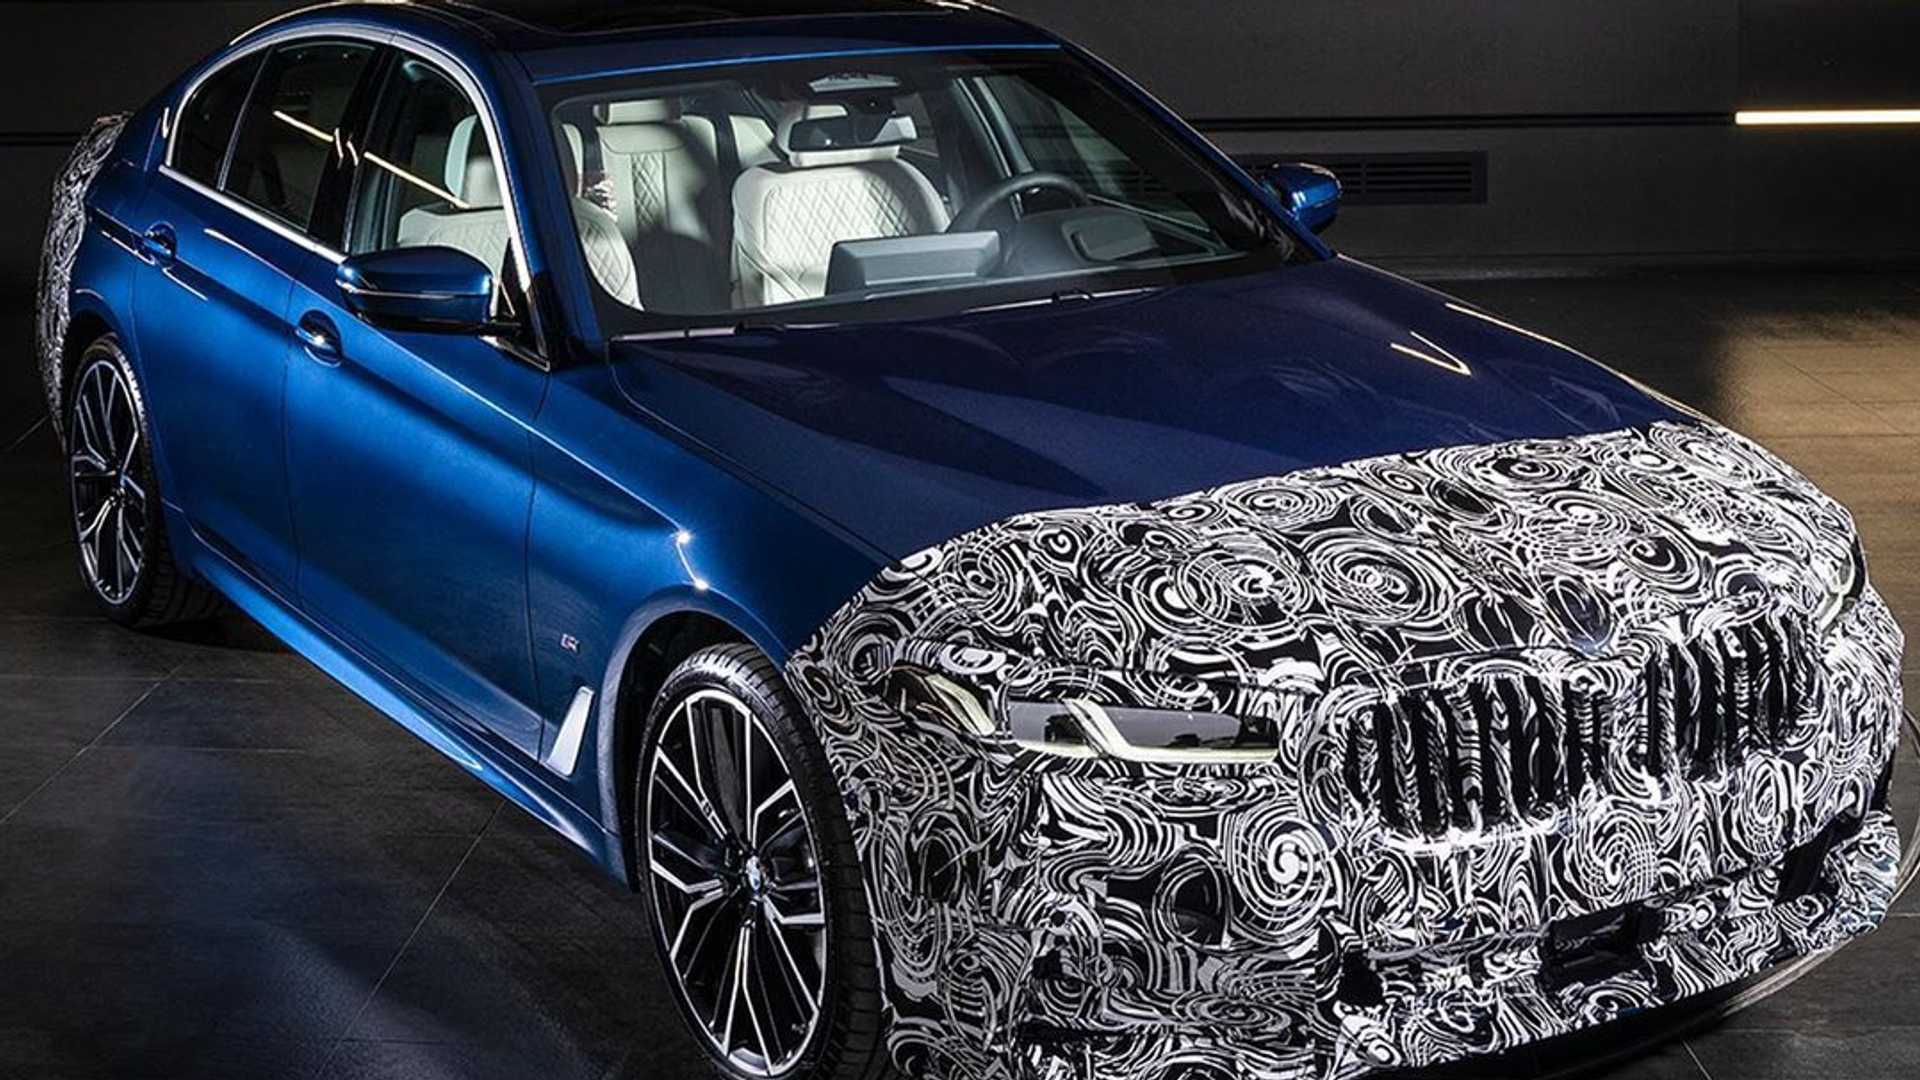 bmw-5-series-and-6-series-gran-turismo-facelift-teaser-images.jpg